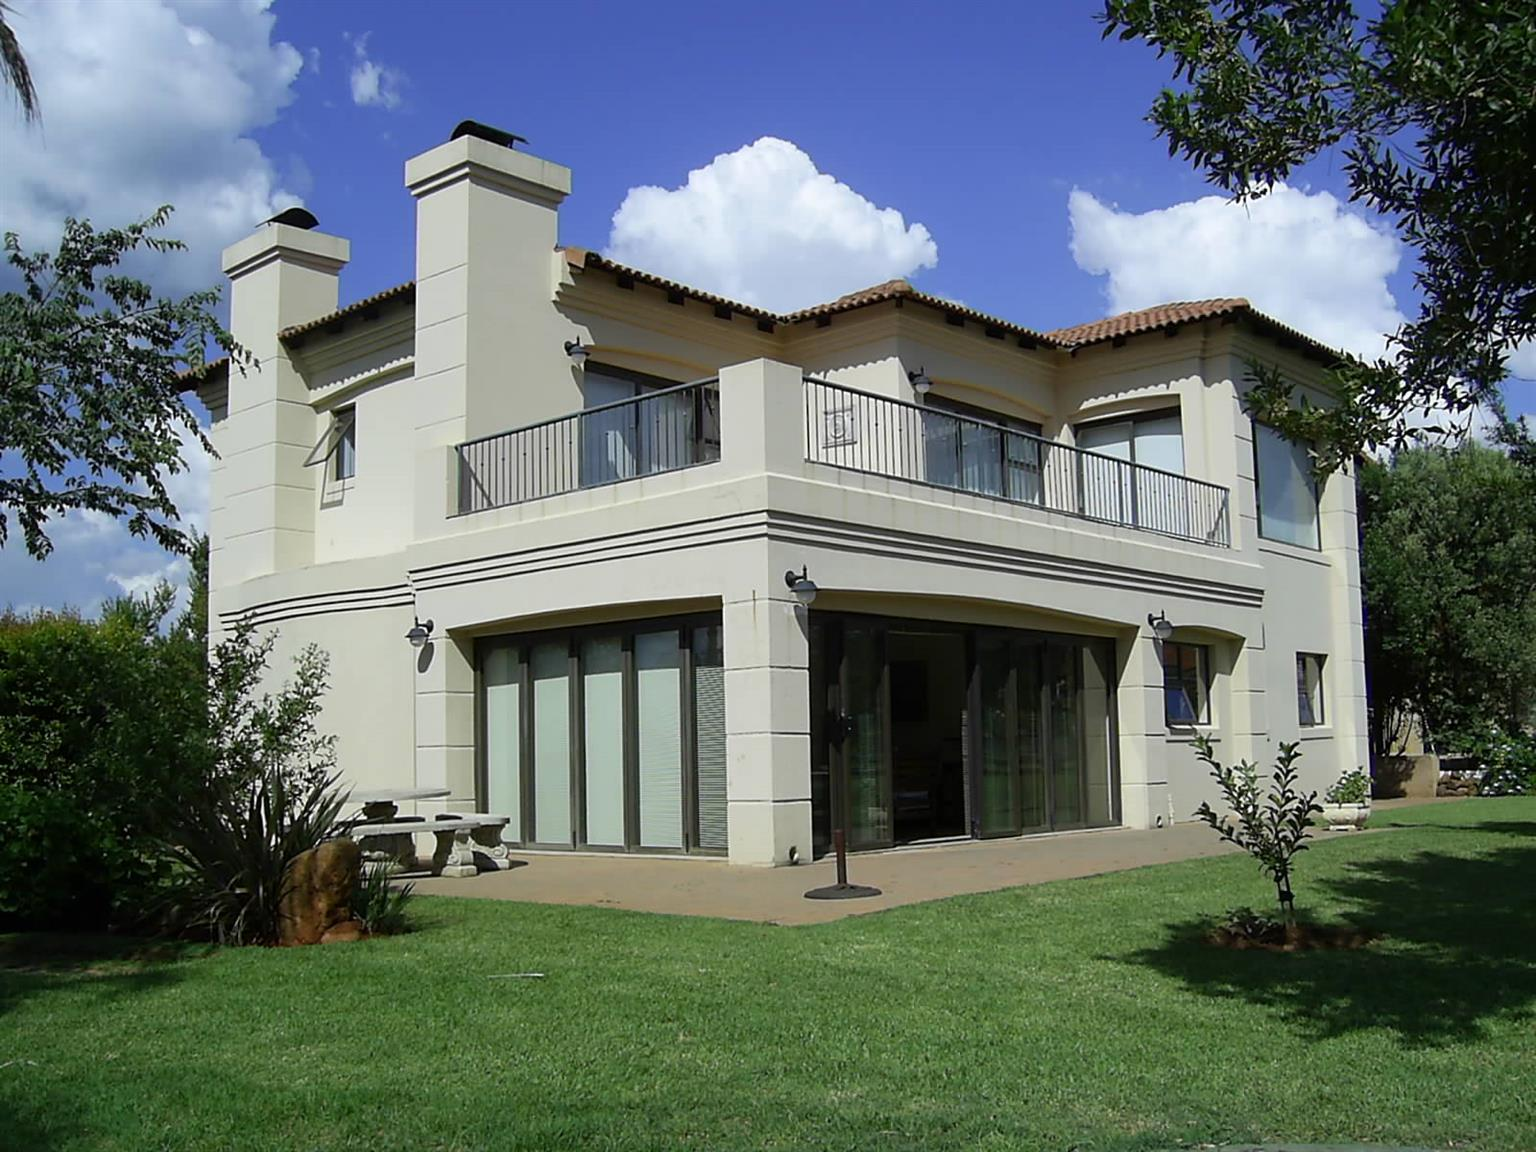 In Secure Estate with Boating, Golf and Equestrian, on the shores of Hartbeespoort Dam